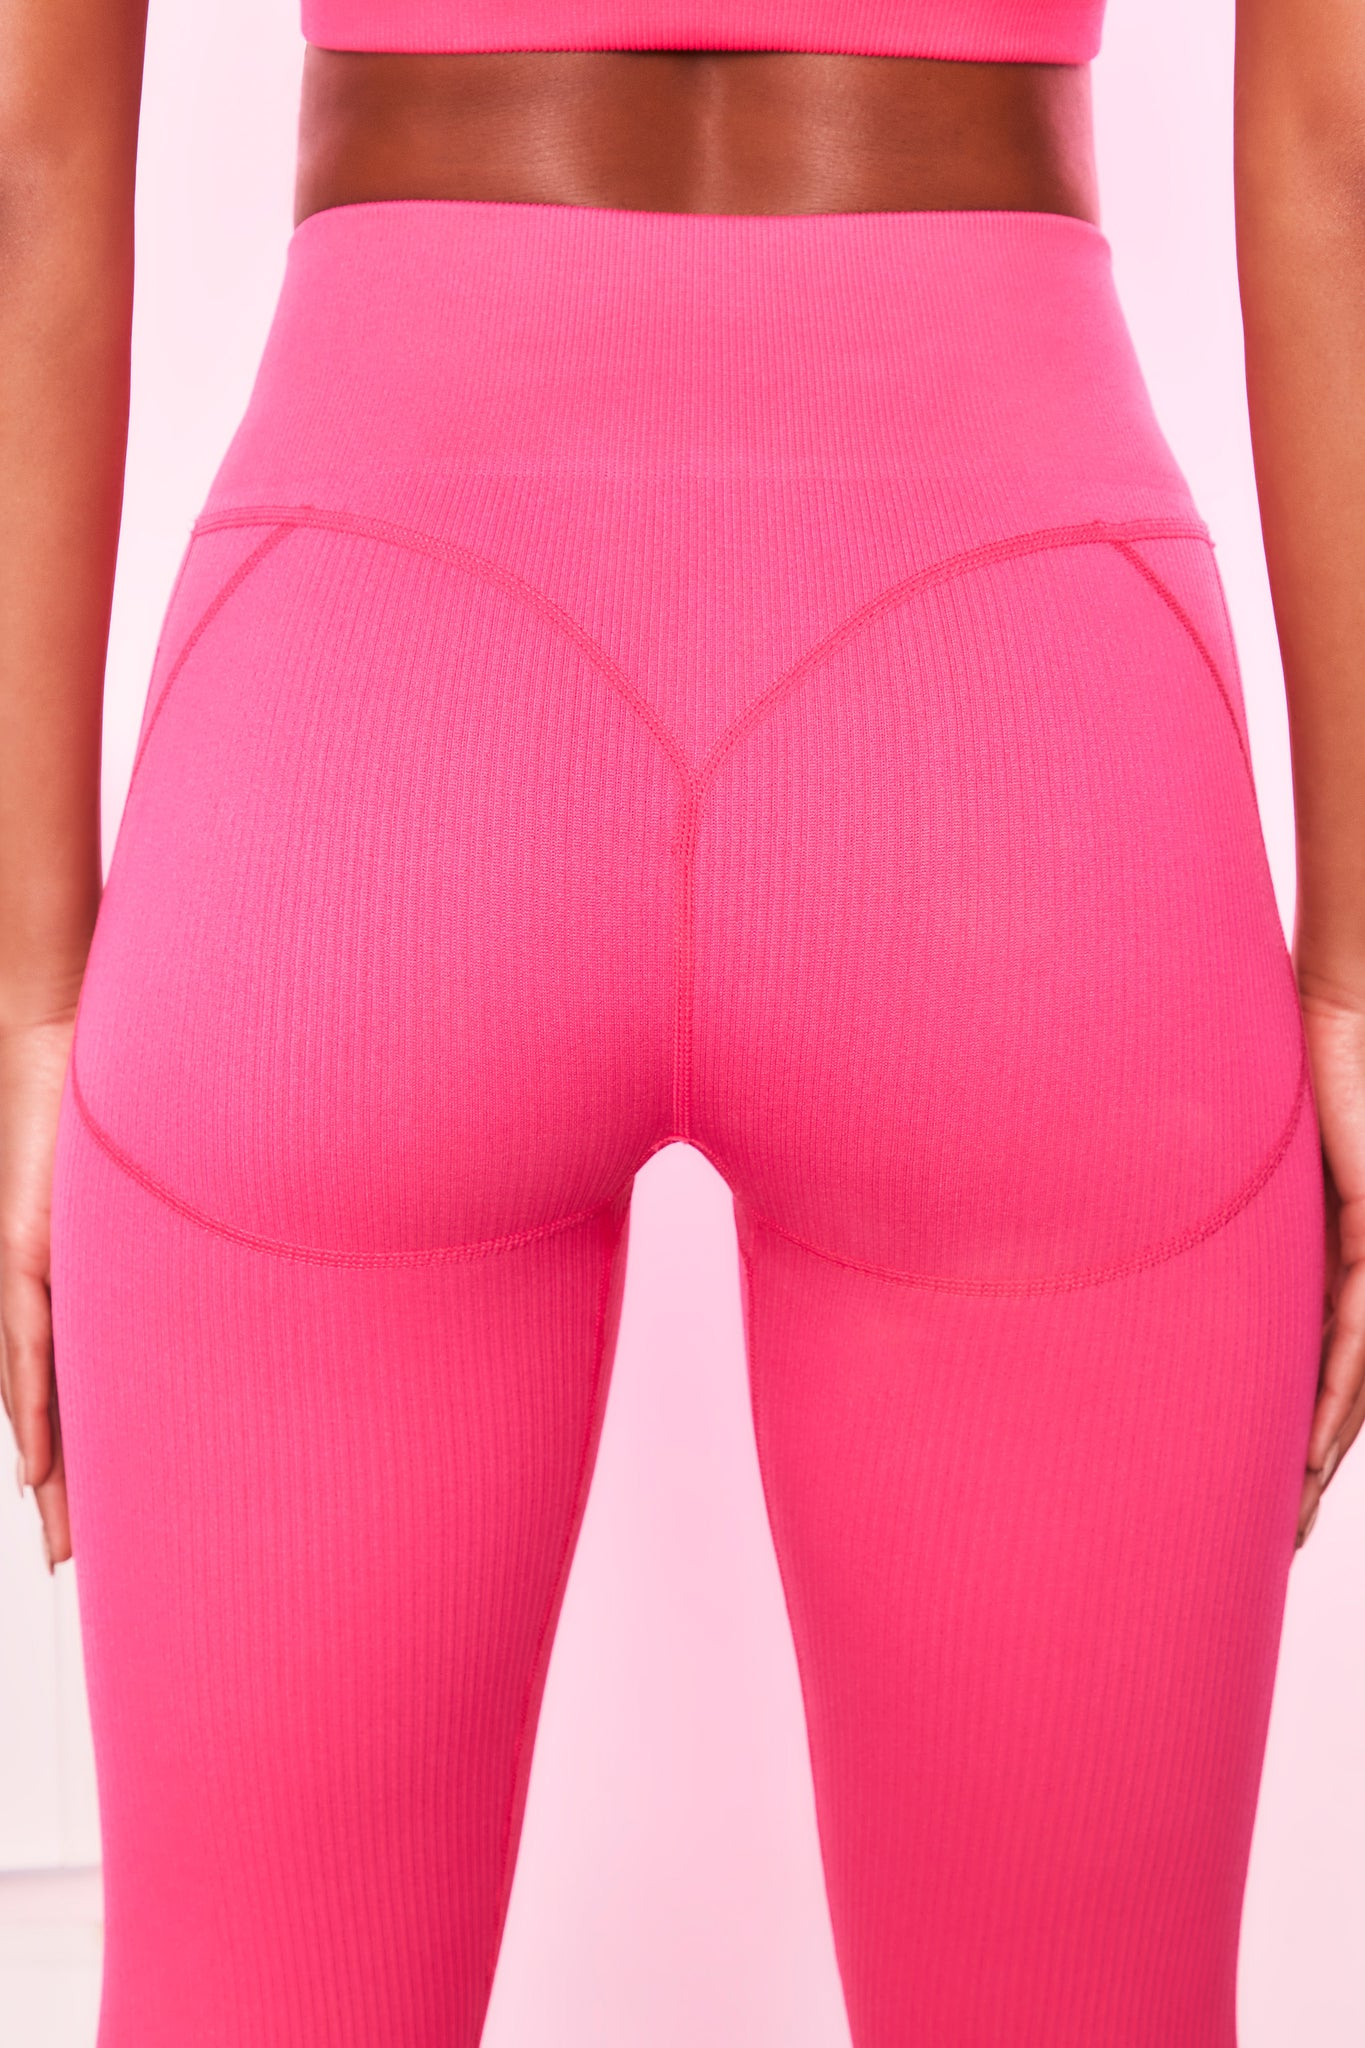 High waisted ribbed leggings in hot pink with seam detailing. Image 3 of 6.